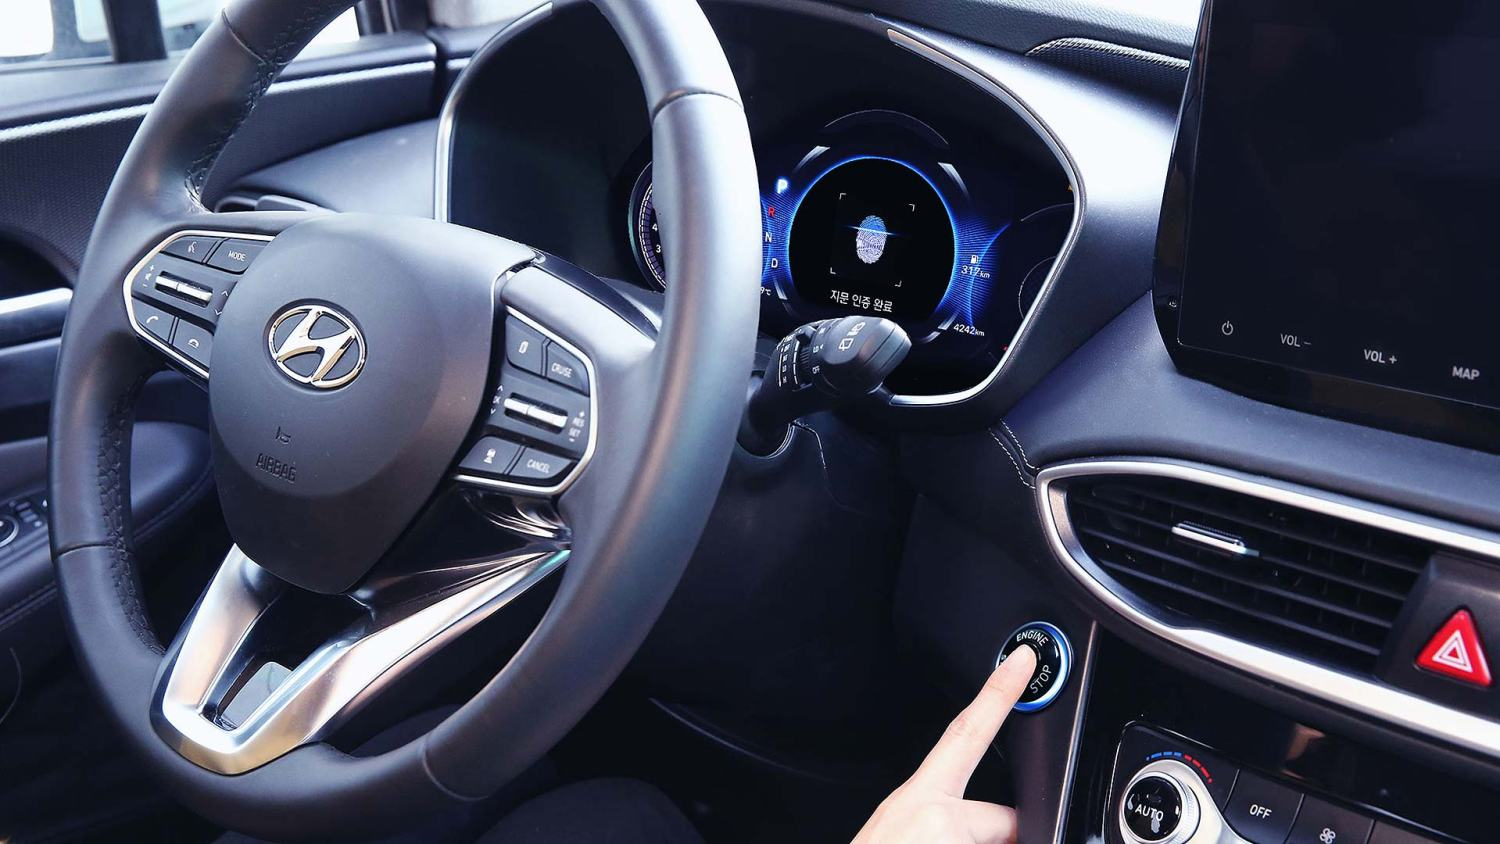 Hyundai fingerprint technology